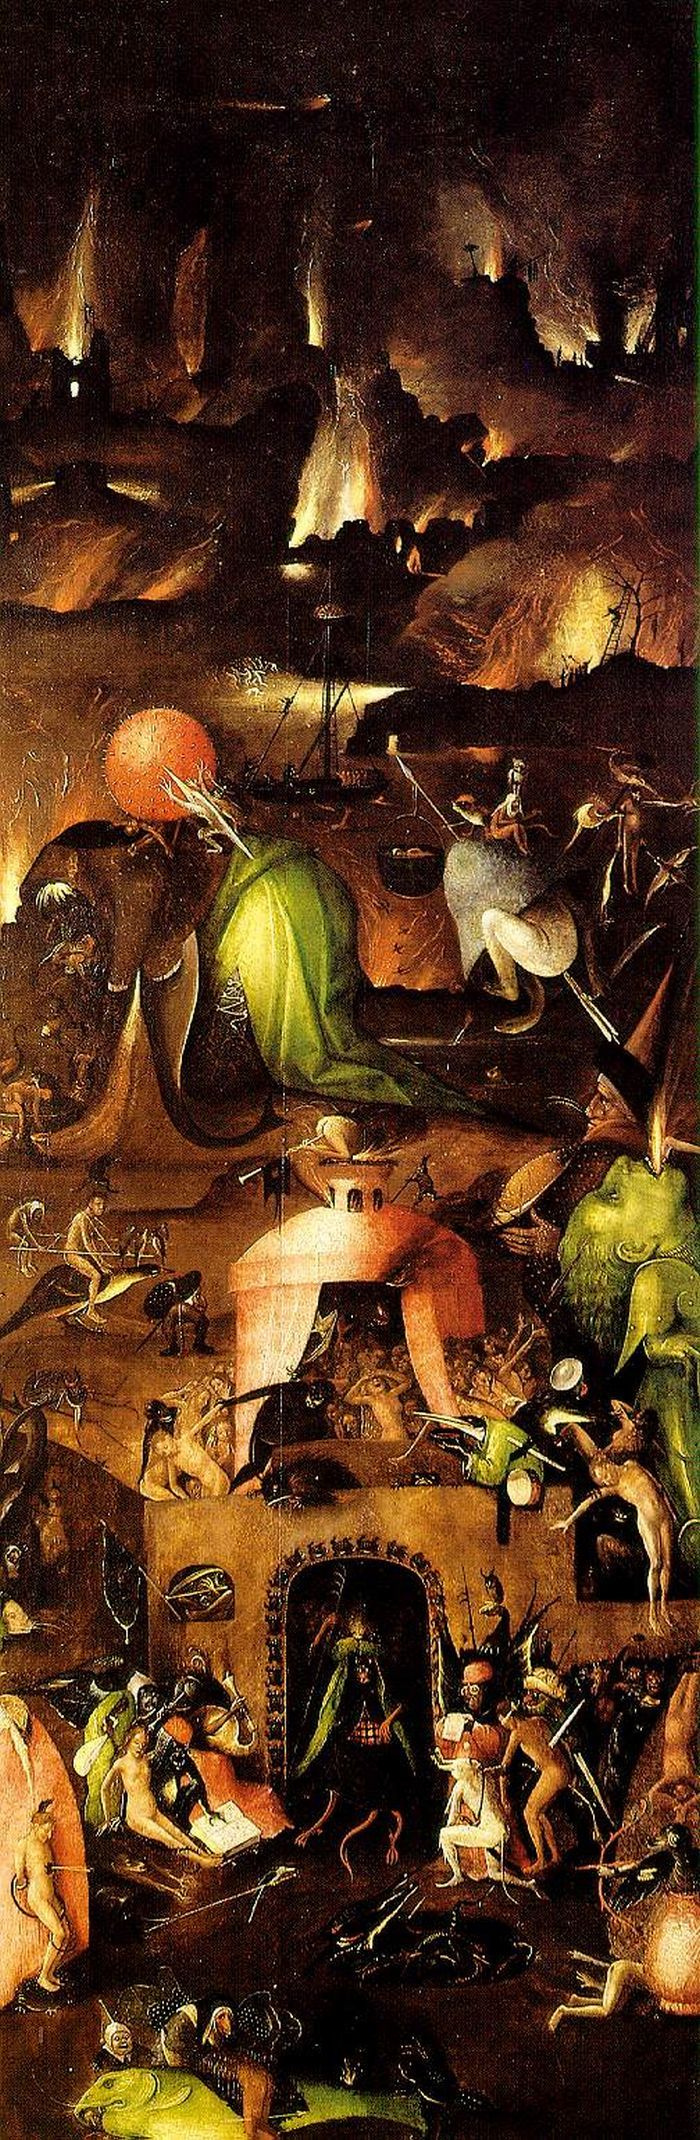 Hieronymus Bosch. Hell. The triptych the last judgment. Right wing